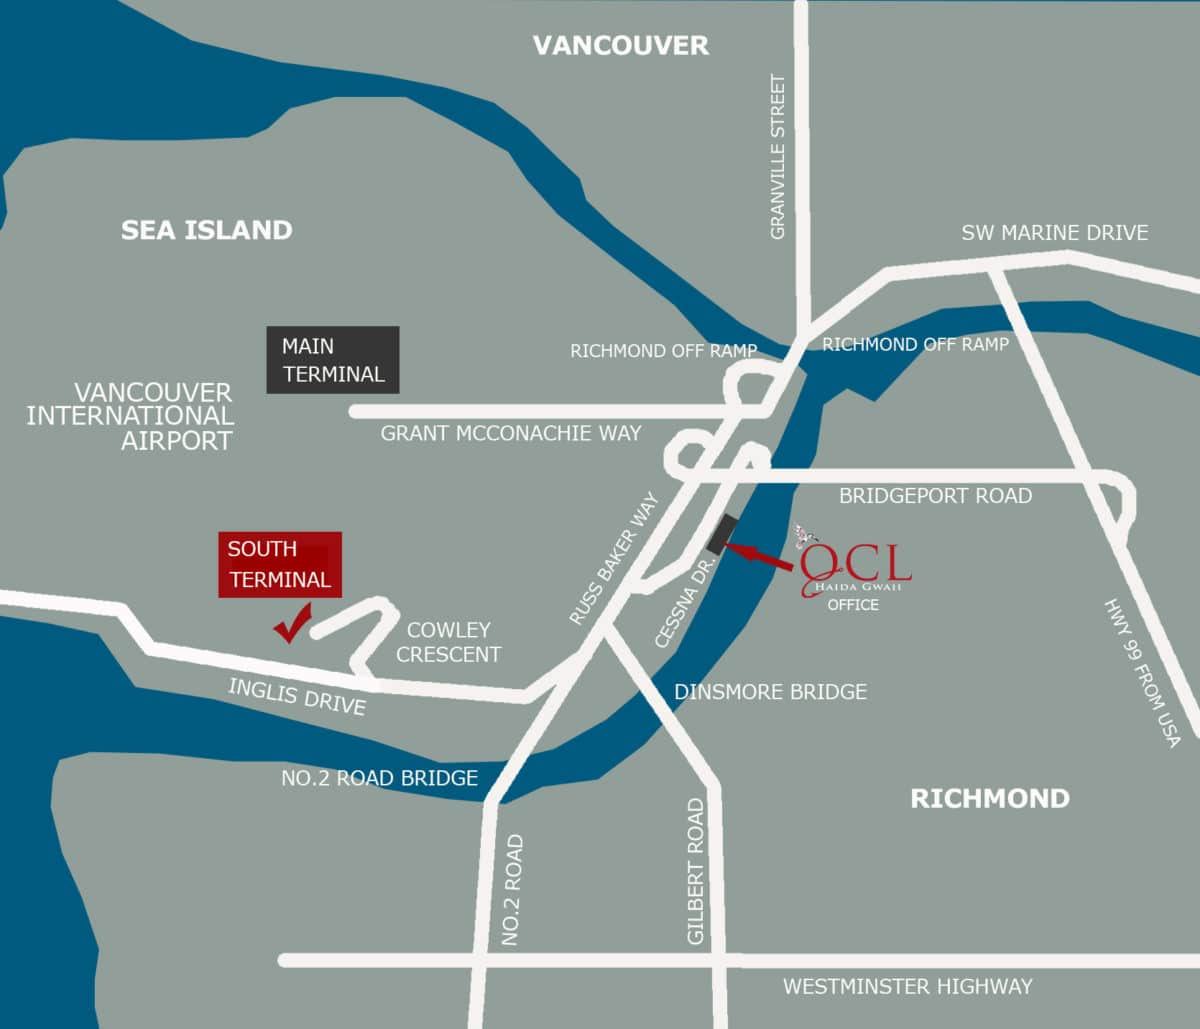 Vancouver International Airport and QCL head office